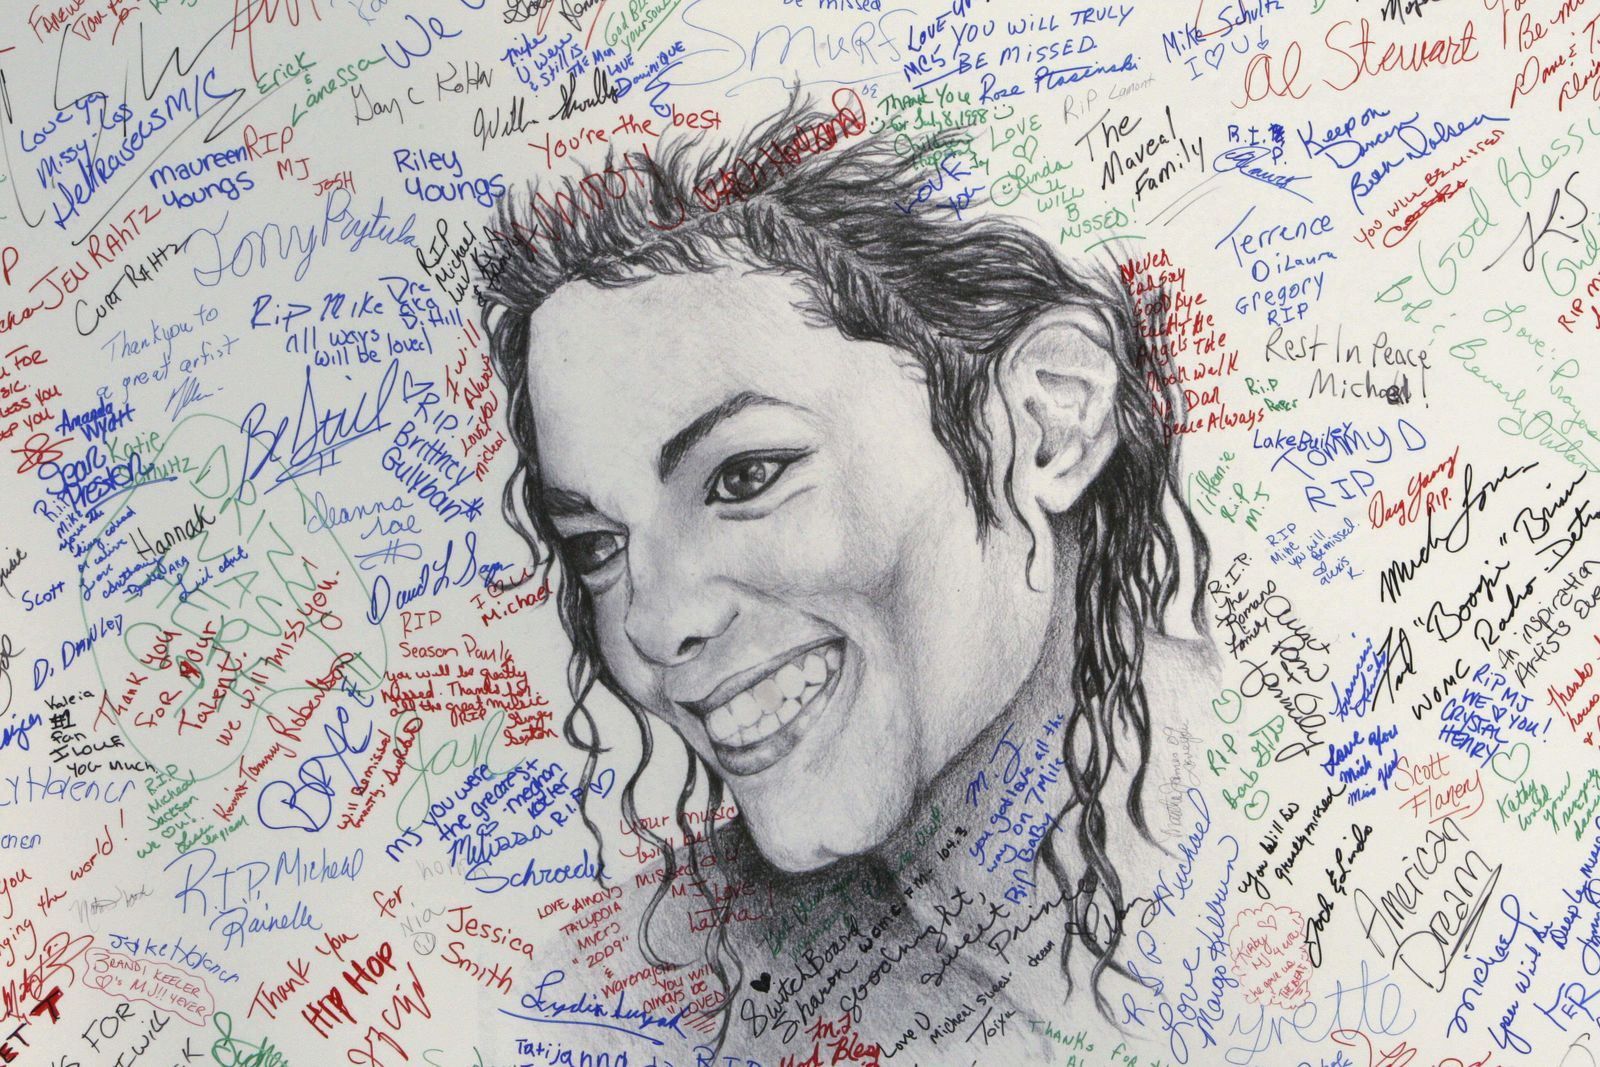 FILE - This July 7, 2009 file photo shows signatures on a poster of the late pop icon Michael Jackson at the Charles H. Wright Museum of African American History in Detroit. Tuesday, June 25, 2019, marks the tenth anniversary of Jackson's death. (AP Photo/Carlos Osorio, File)